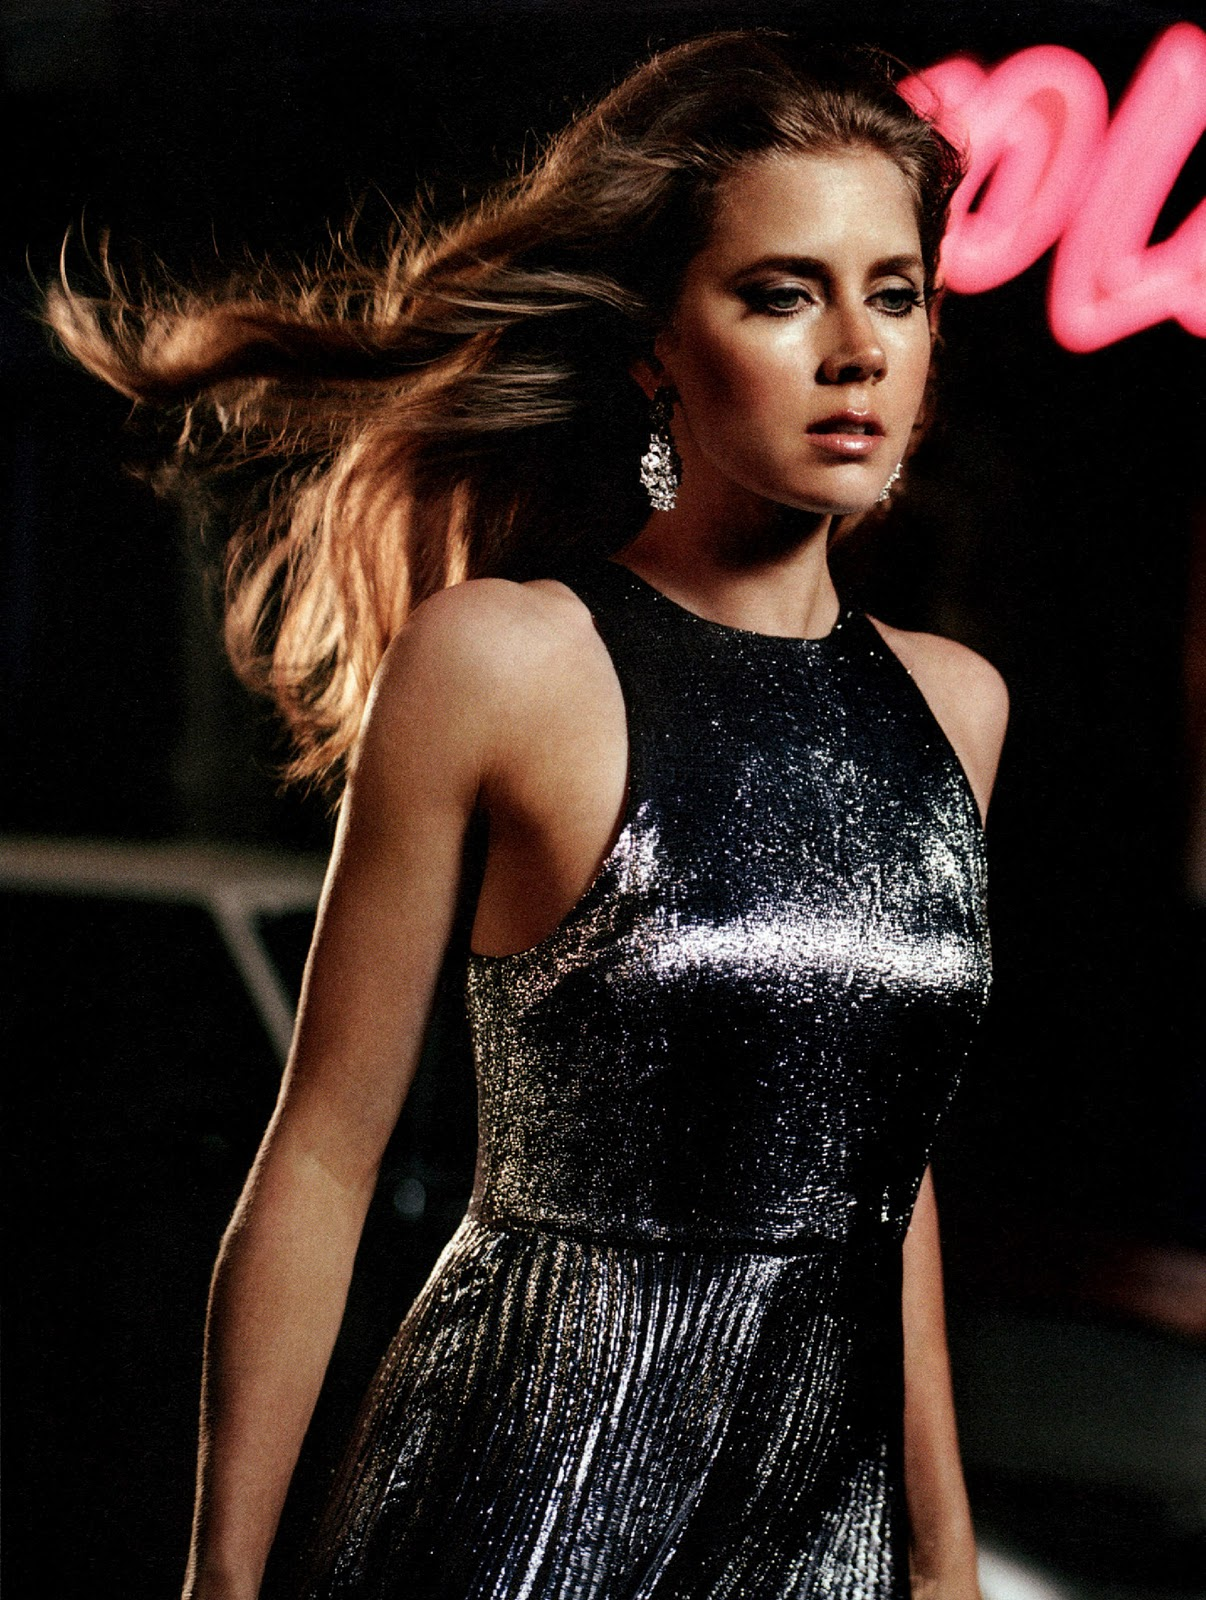 http://1.bp.blogspot.com/-cycLxpn7cTk/TsXmCNz0ybI/AAAAAAAAMUw/rKkeU-f0TYE/s1600/Amy_Adams.INSTYLE.December_2011.Scanned_by_KROQJOCK.HQ.5_122_107loedited.jpg